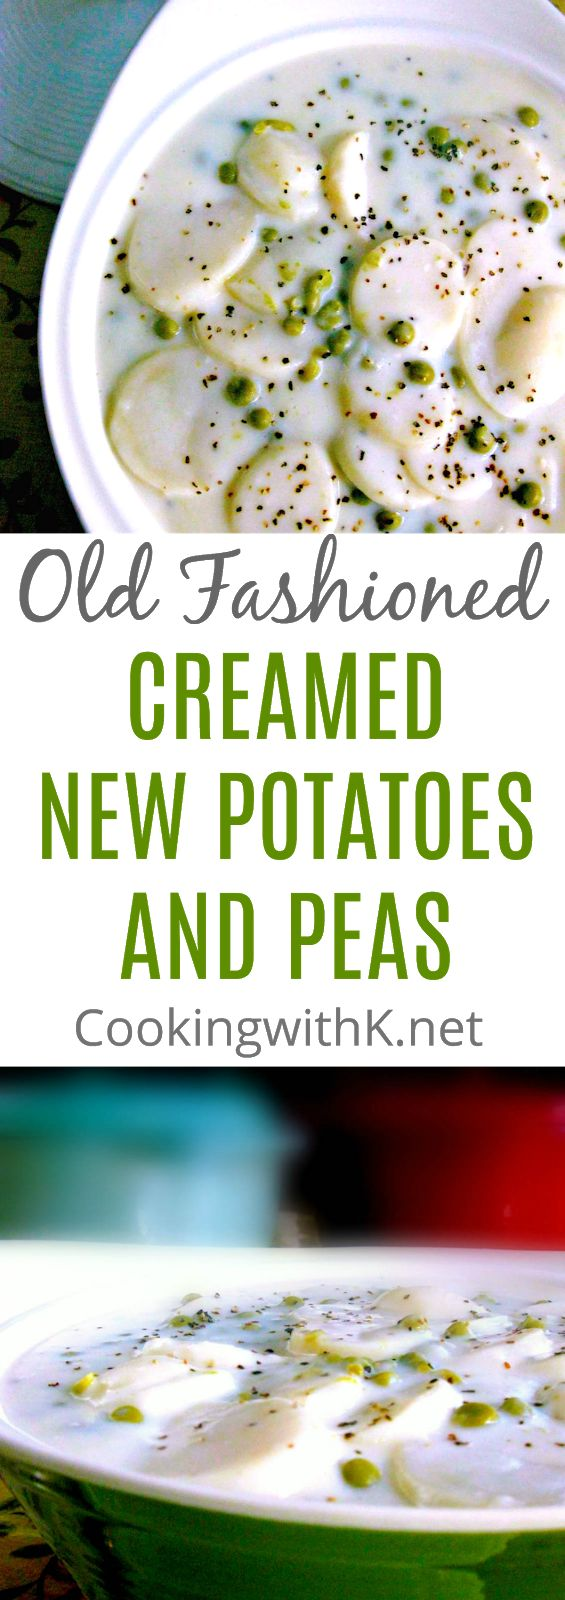 Old Fashioned New Potatoes and Peas in a White Sauce